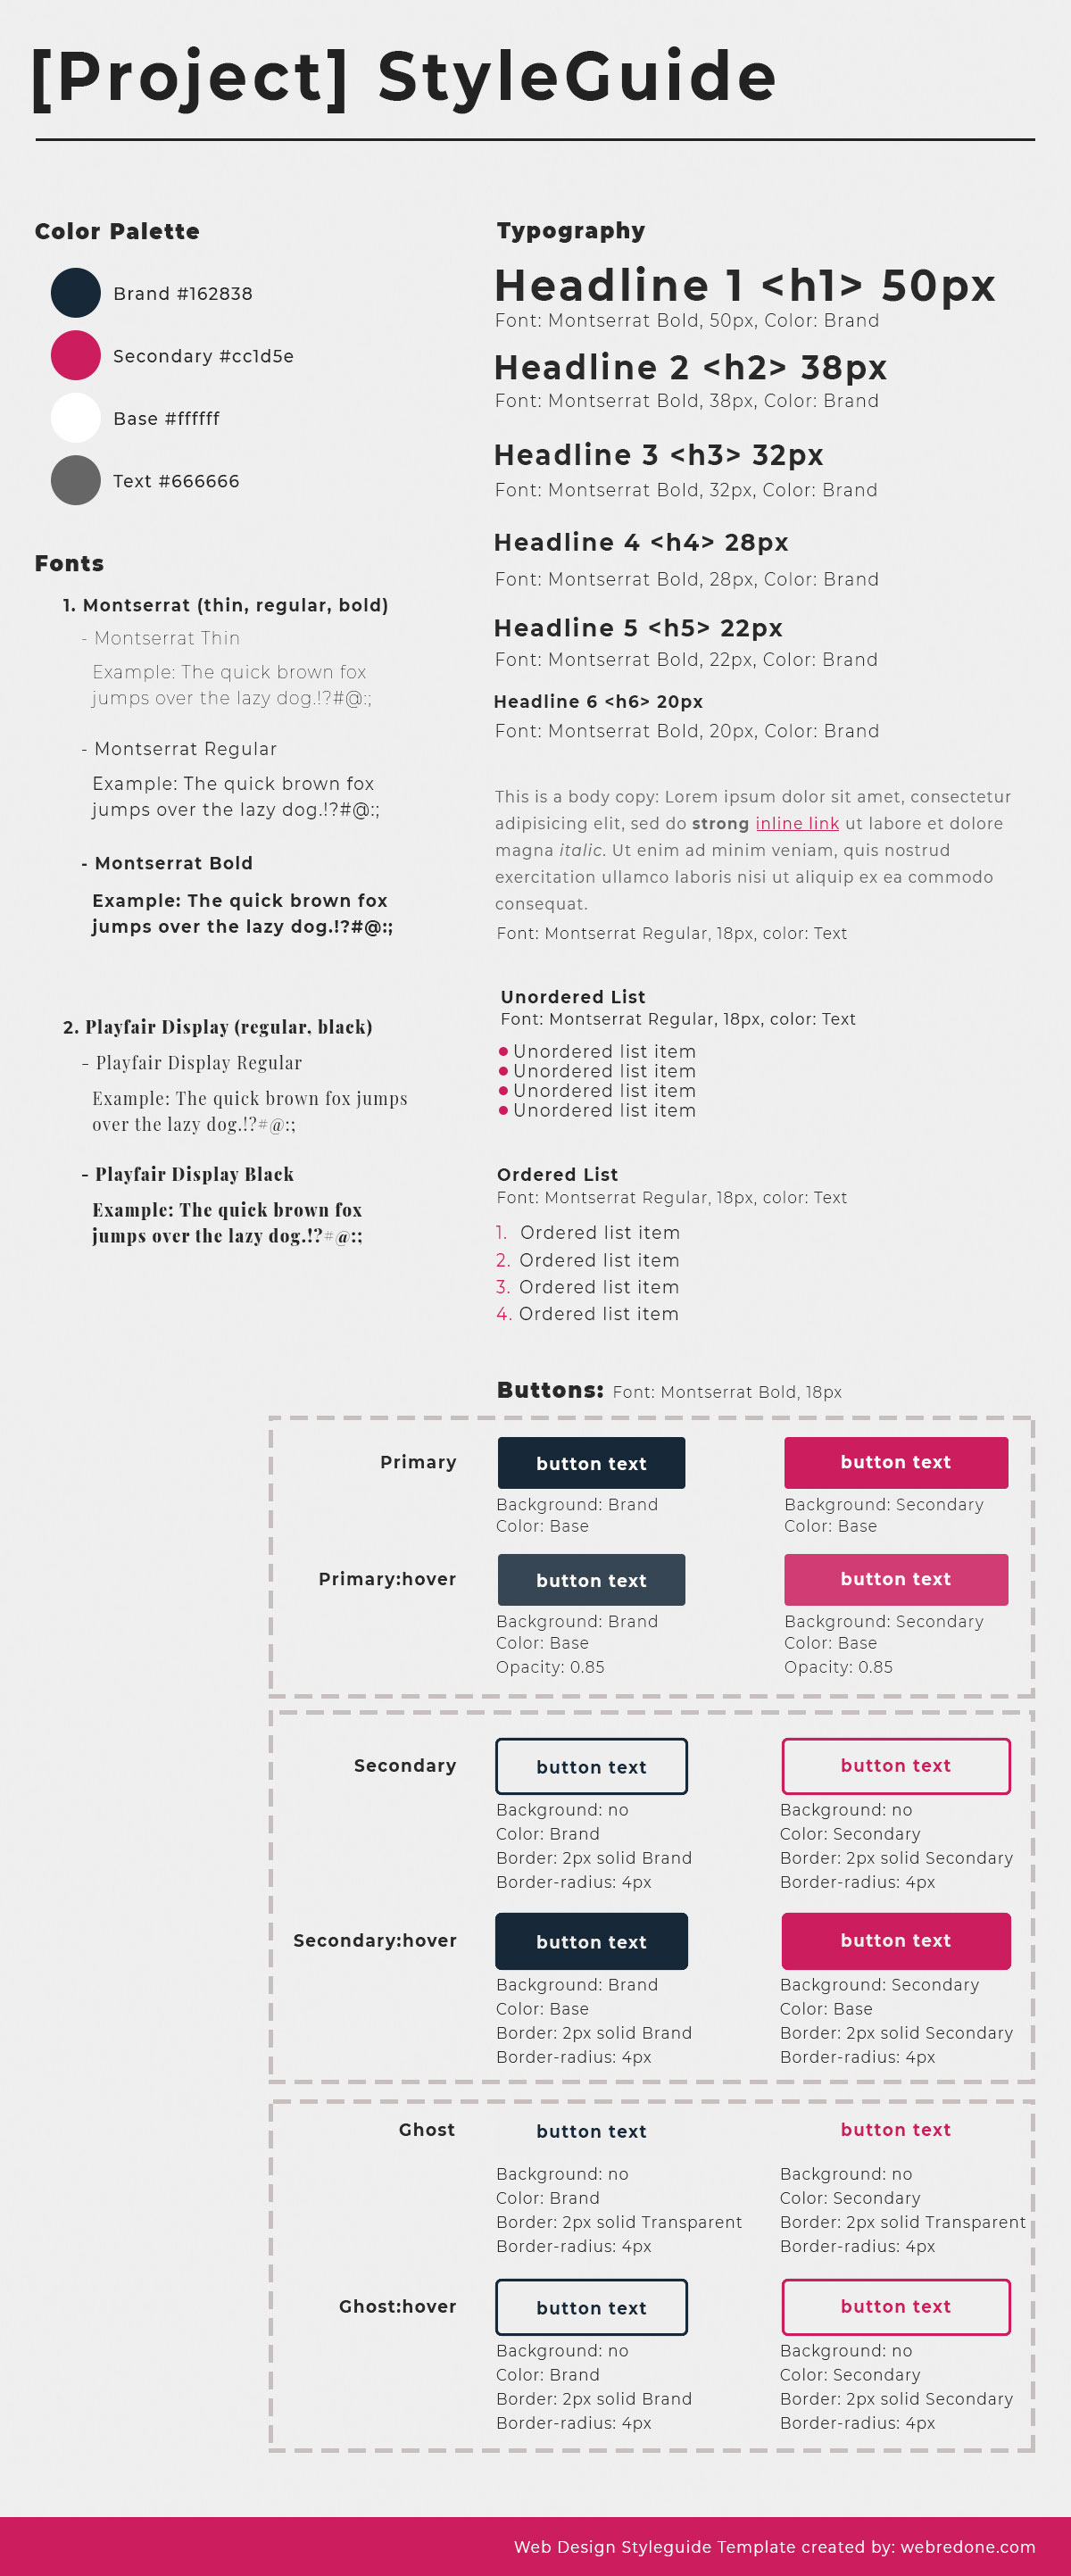 website design guidelines